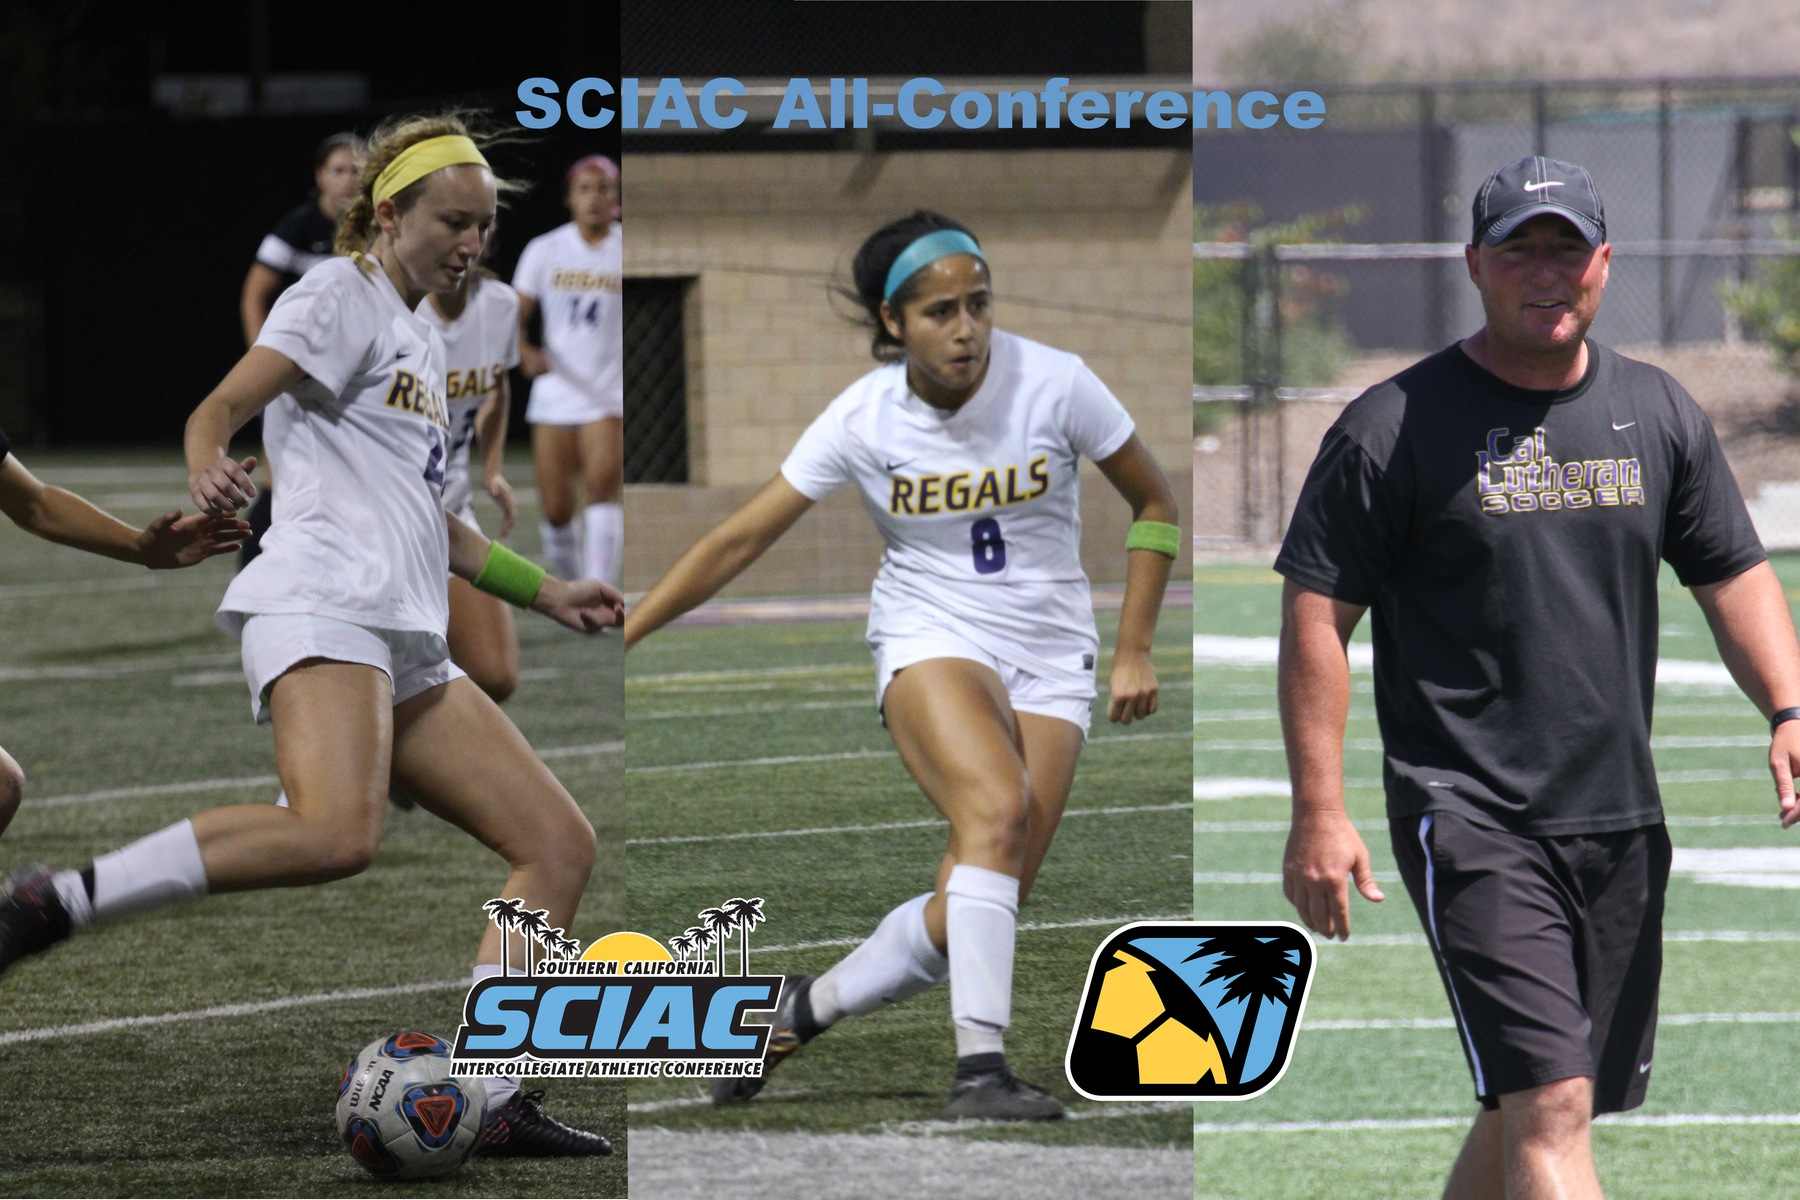 Youngdahl Named SCIAC AOY, Martinez Earns NOY and Marino Garners COY